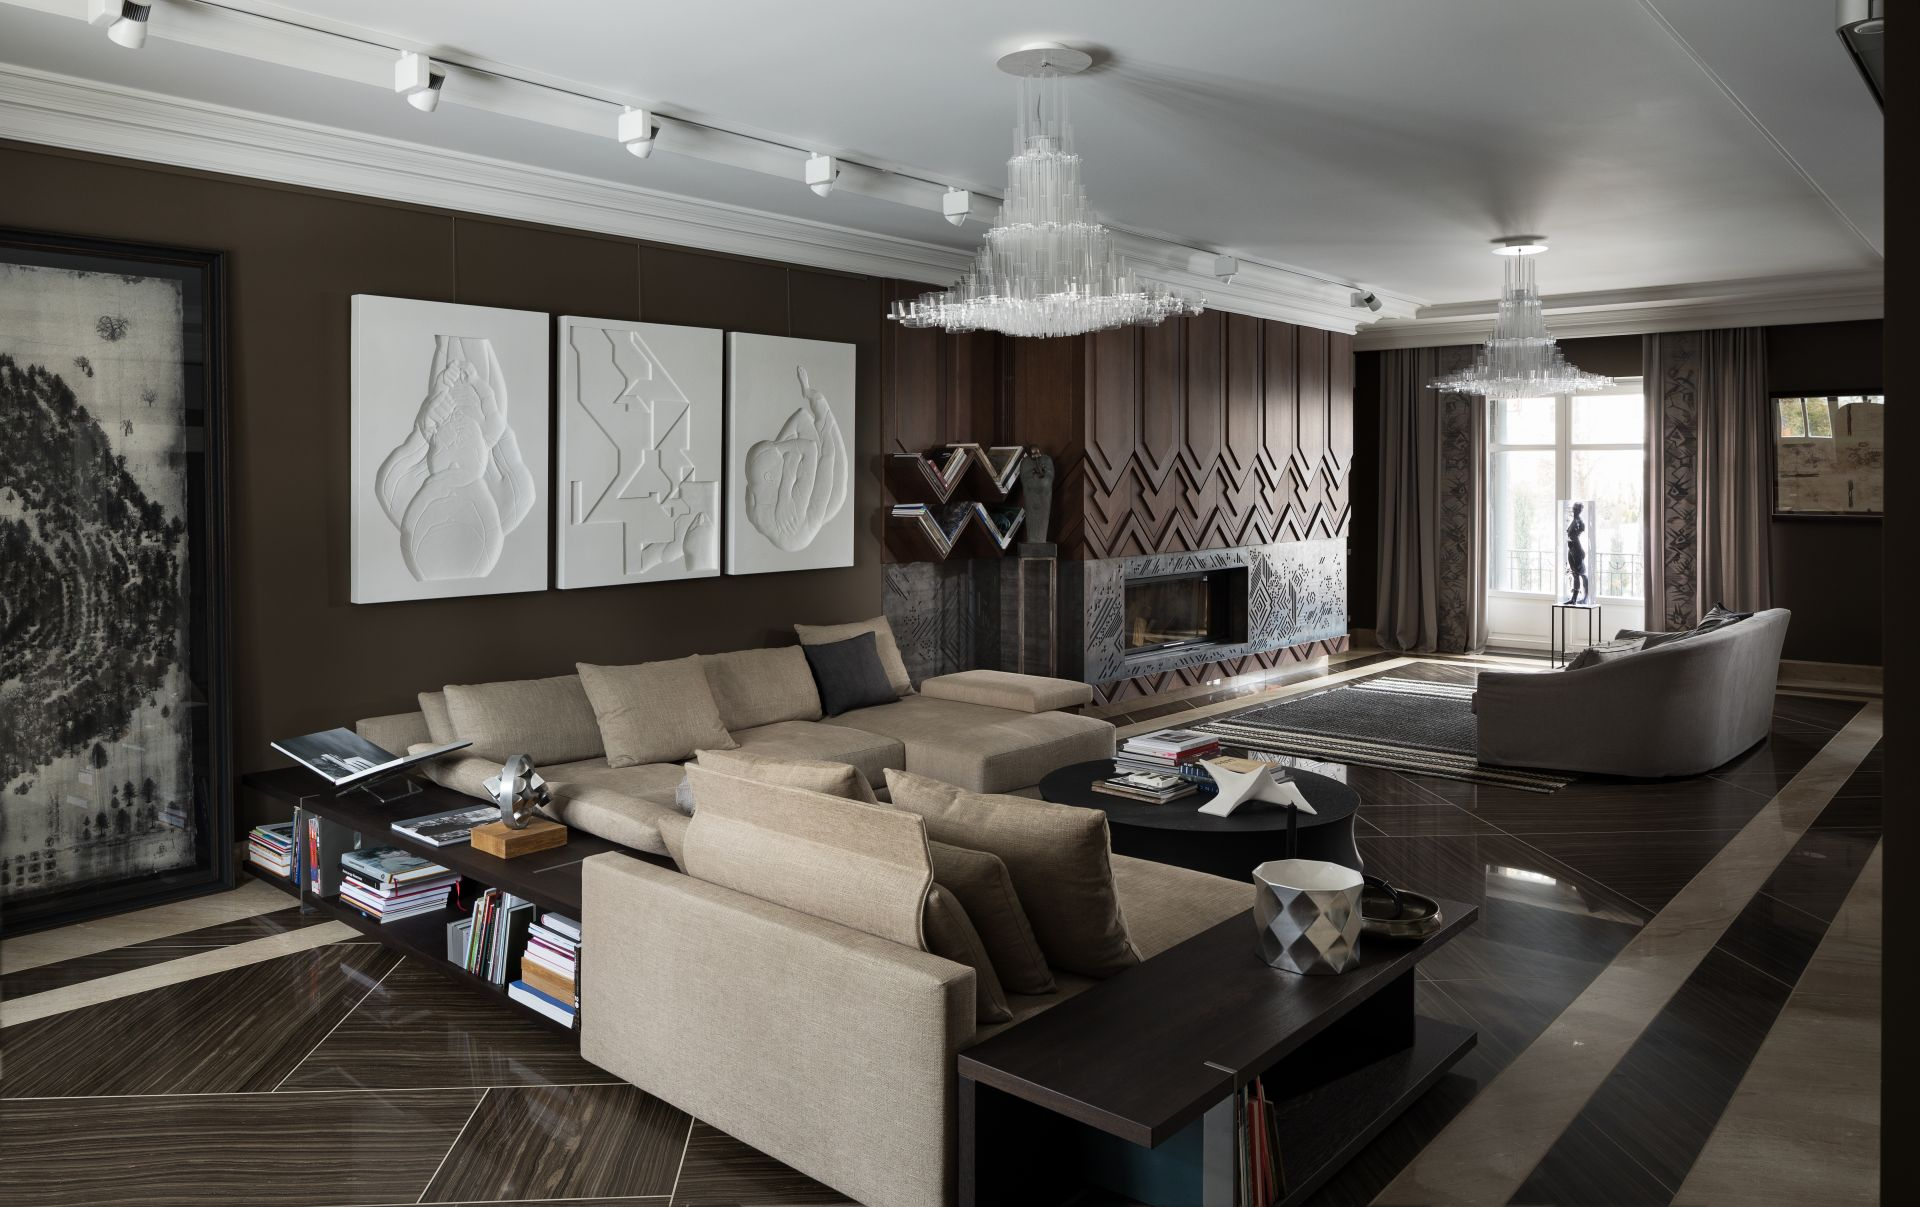 Wooden panels in a living room